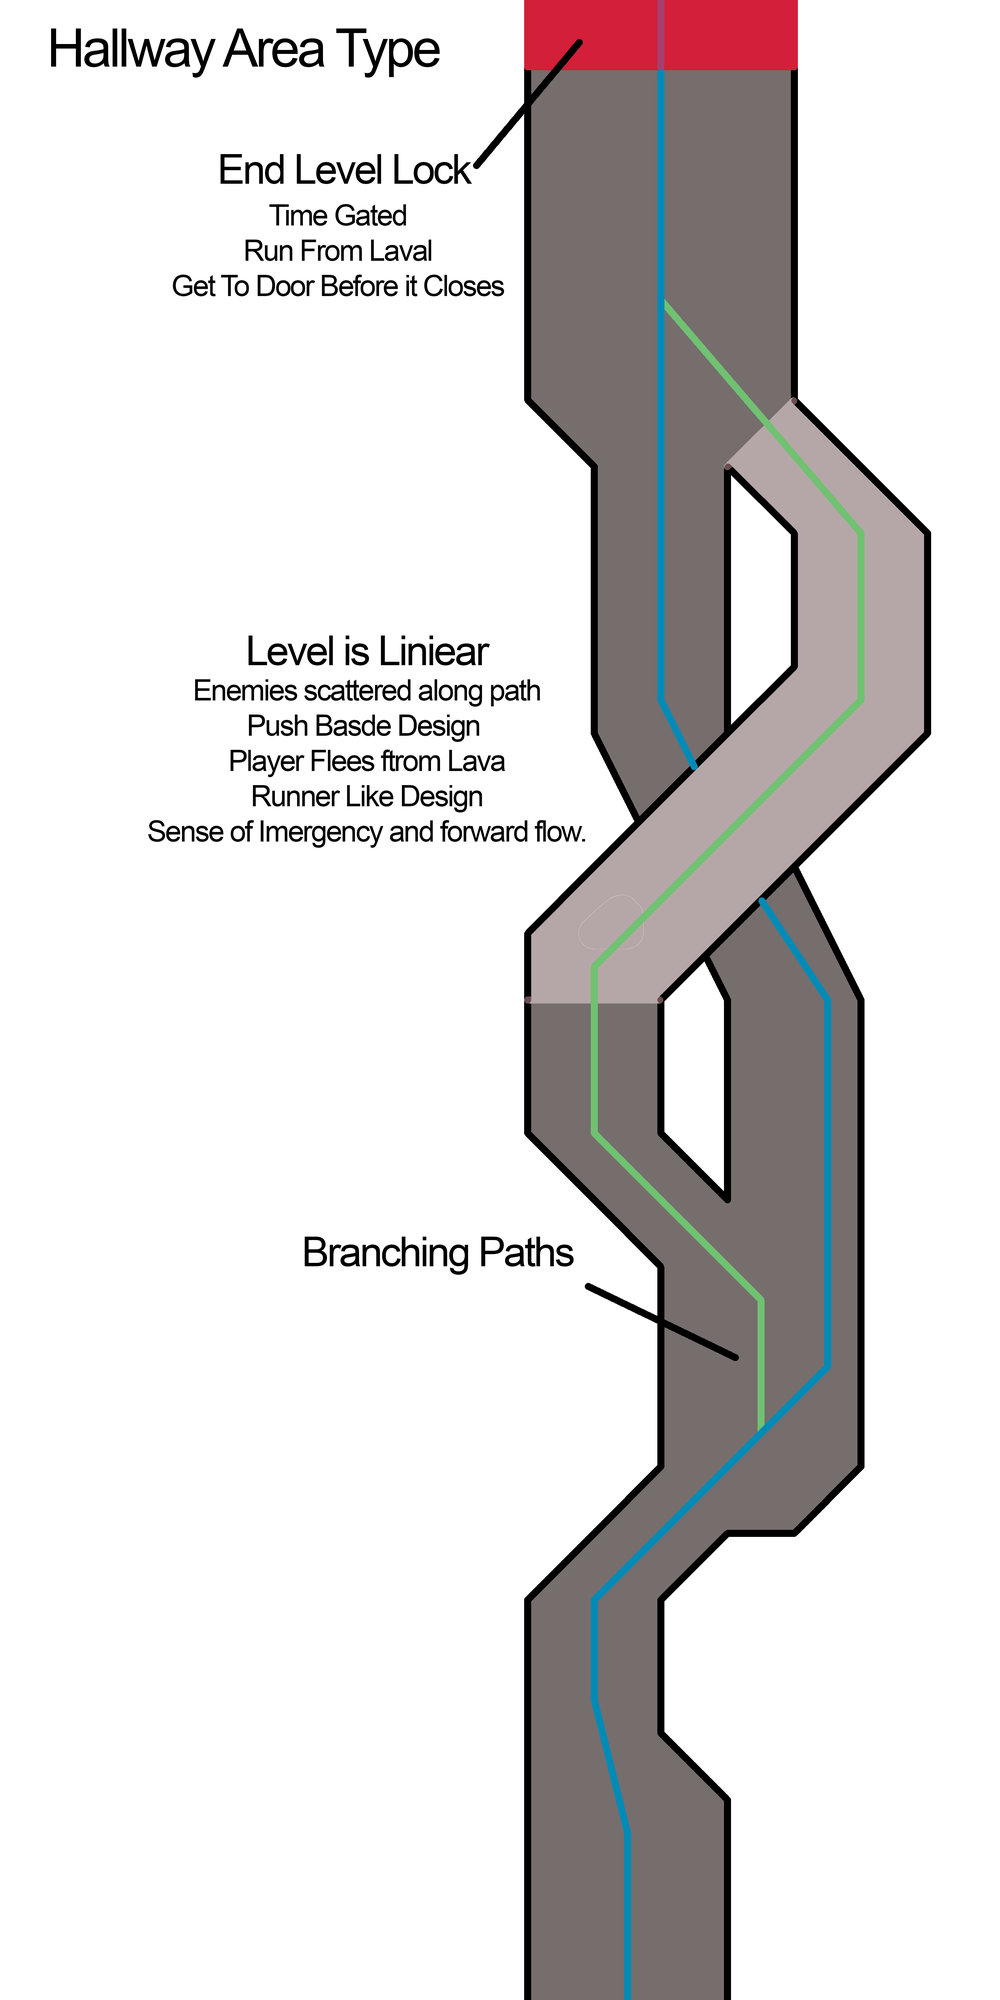 A conceptualisation of how the Hallway-Level Arhetype is suposed to be designed, used by the LD team to pitch the idea to the rest of the team